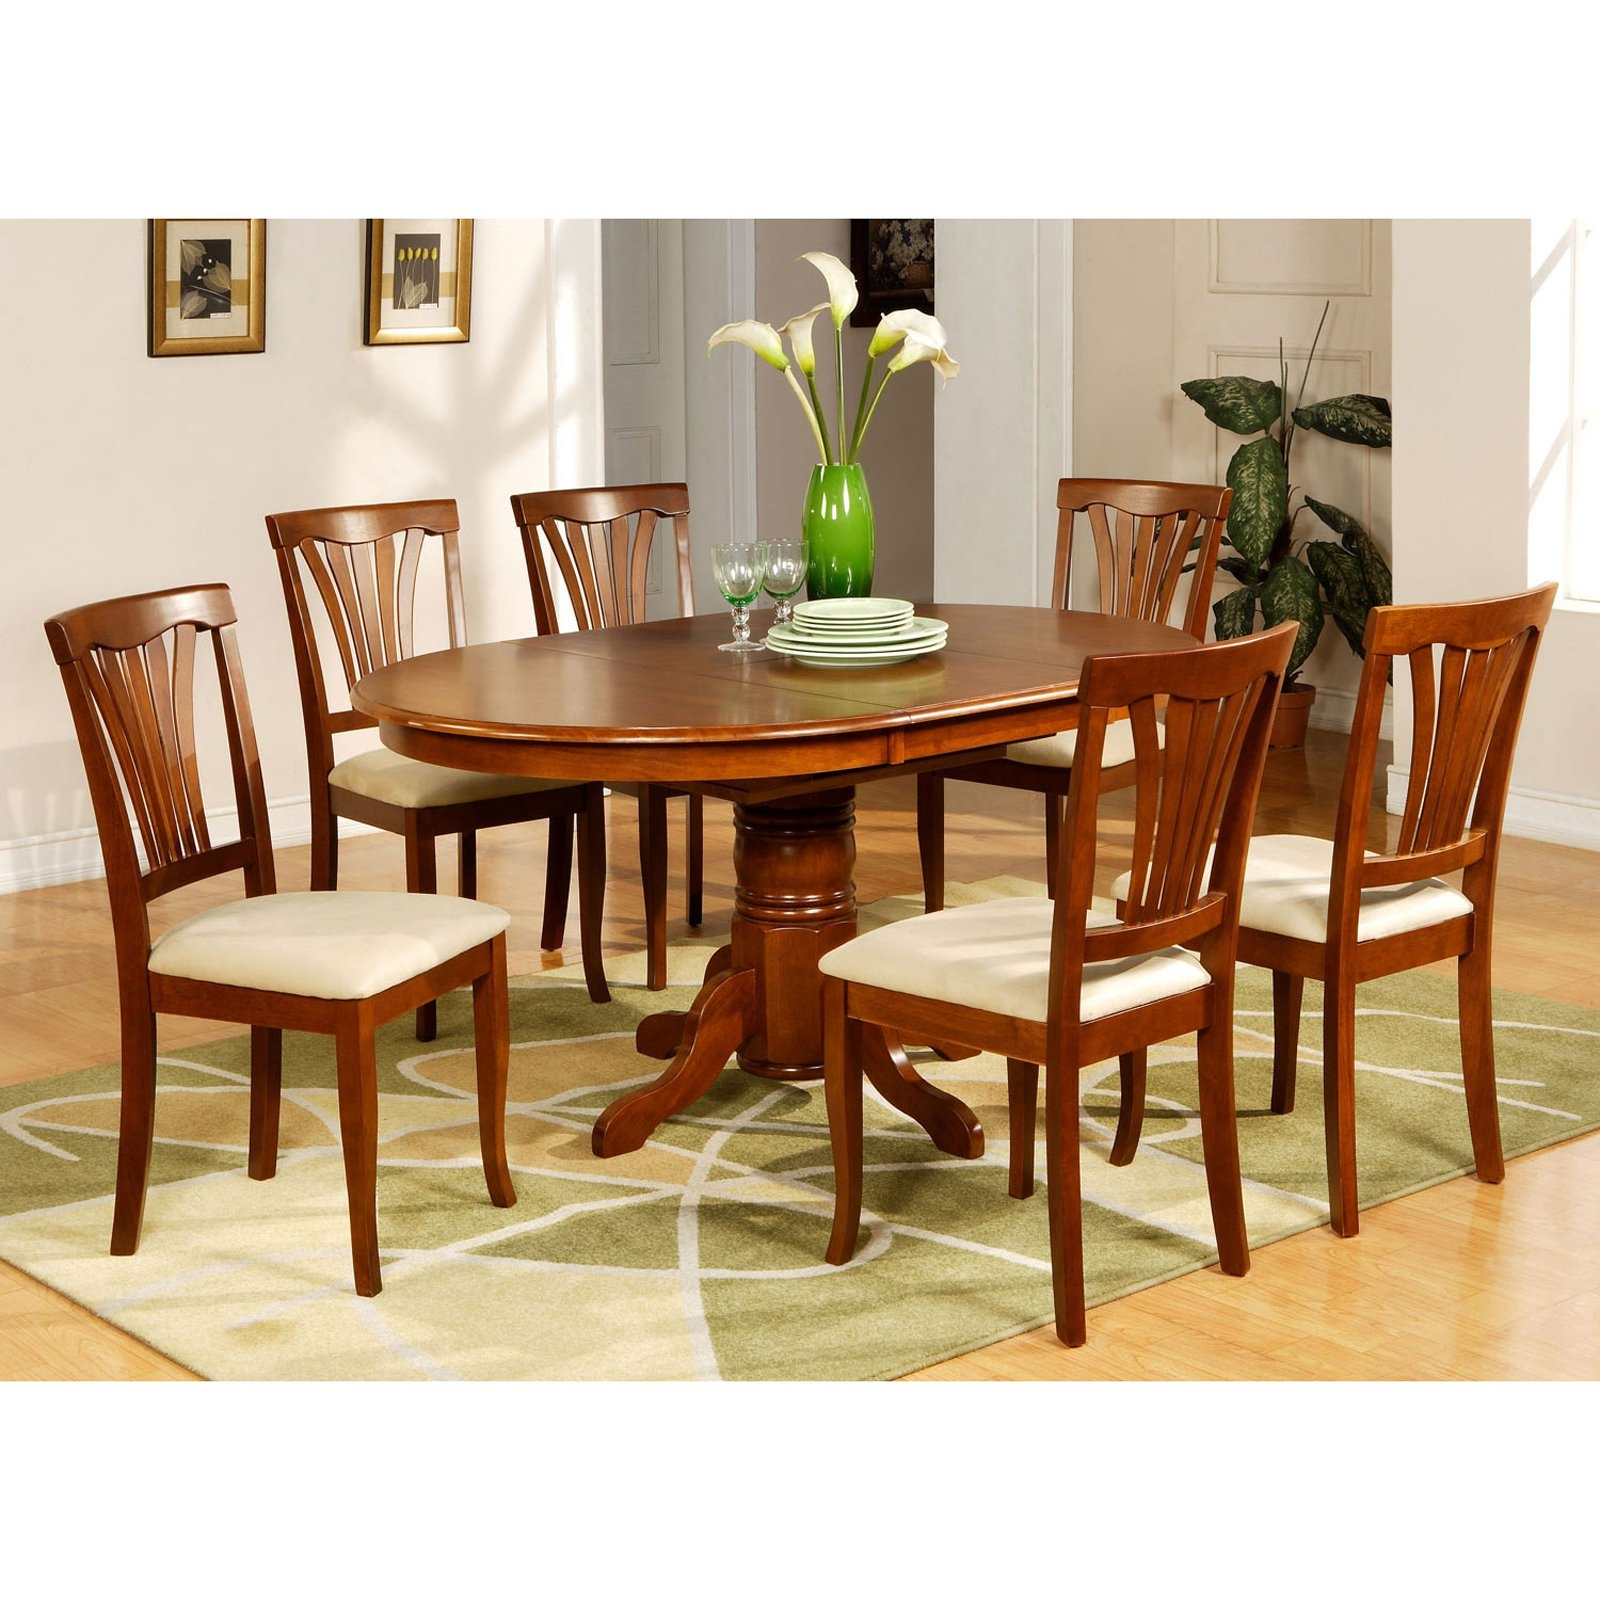 Lovely East West Furniture AVON7 SBR C 7PC Oval Dining Set With Single Pedestal  With